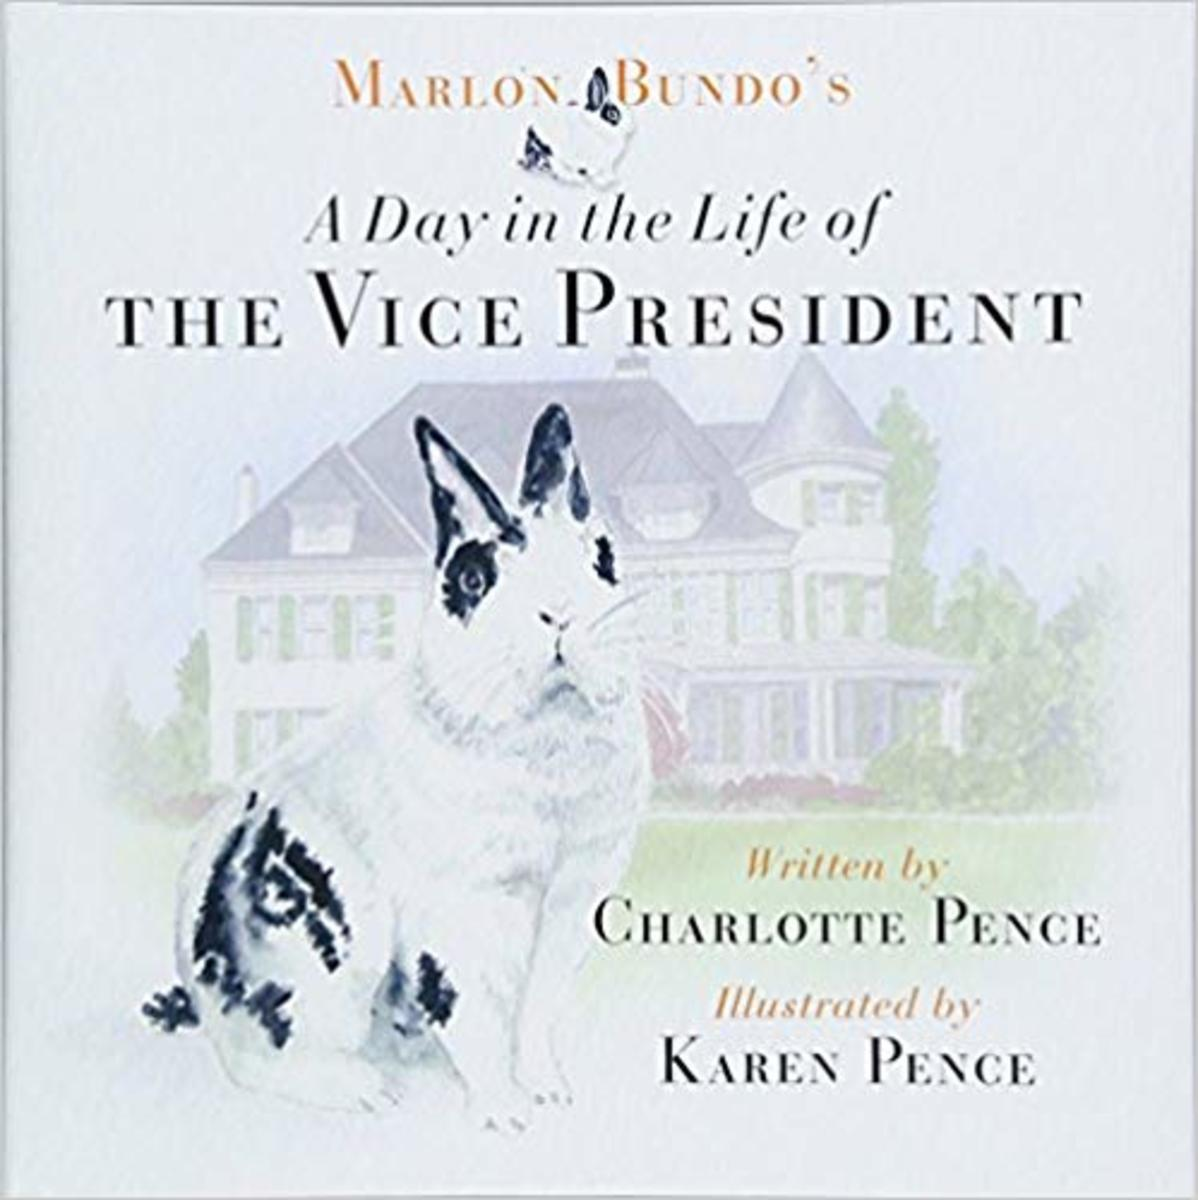 Marlon Bundo's Day in the Life of the Vice President by Charlotte Pence